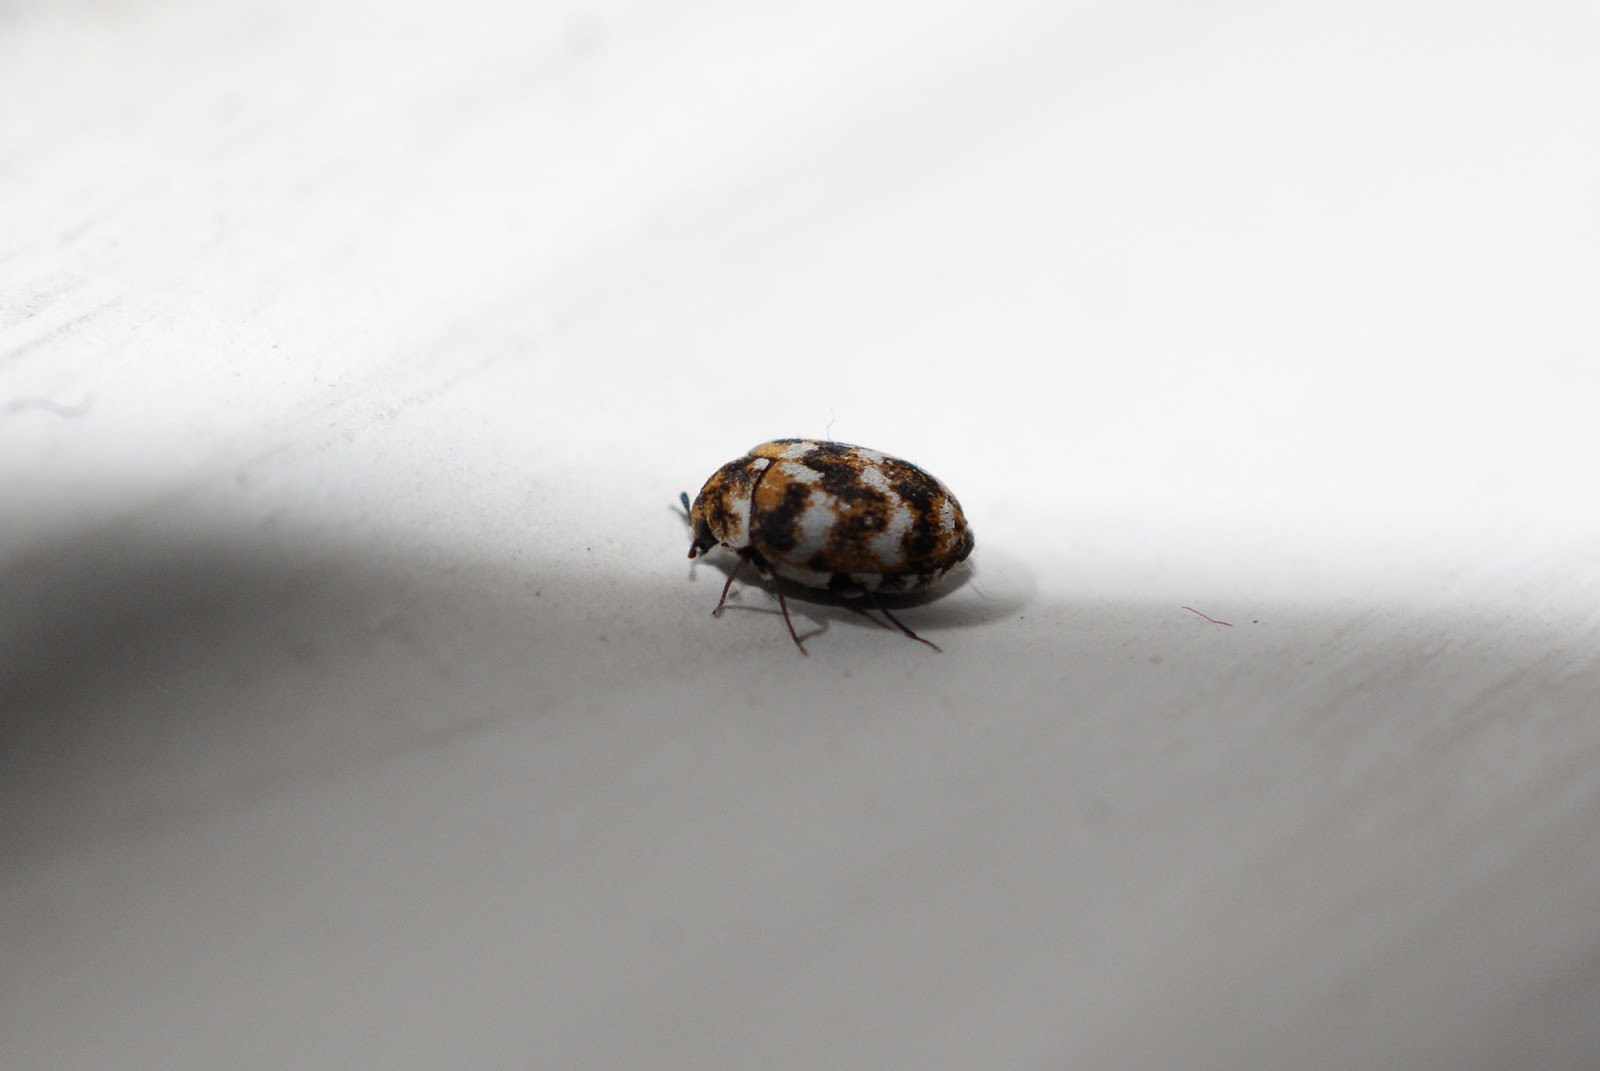 A small beetle on the windowsill  Natural Current Events April 2013. Small Black And White Bugs   Descargas Mundiales com